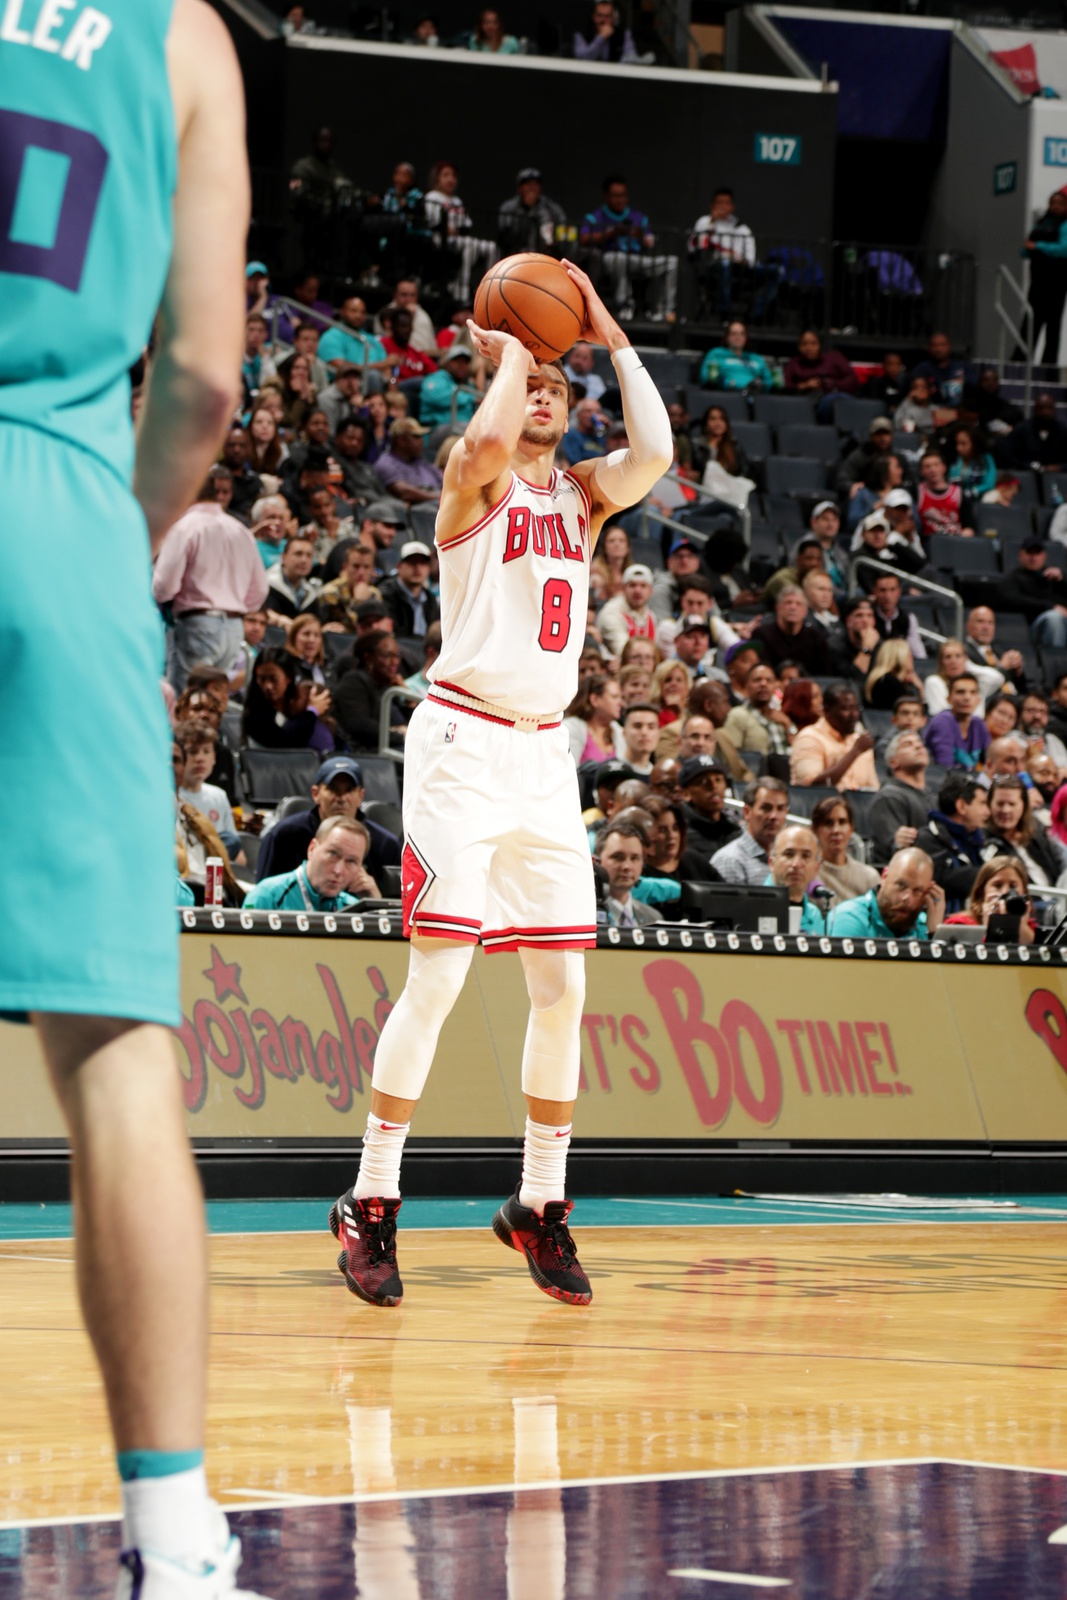 Zach LaVine #8 of the Chicago Bulls shoots the ball against the Charlotte Hornets on October 26, 2018 at Spectrum Center in Charlotte, North Carolina.